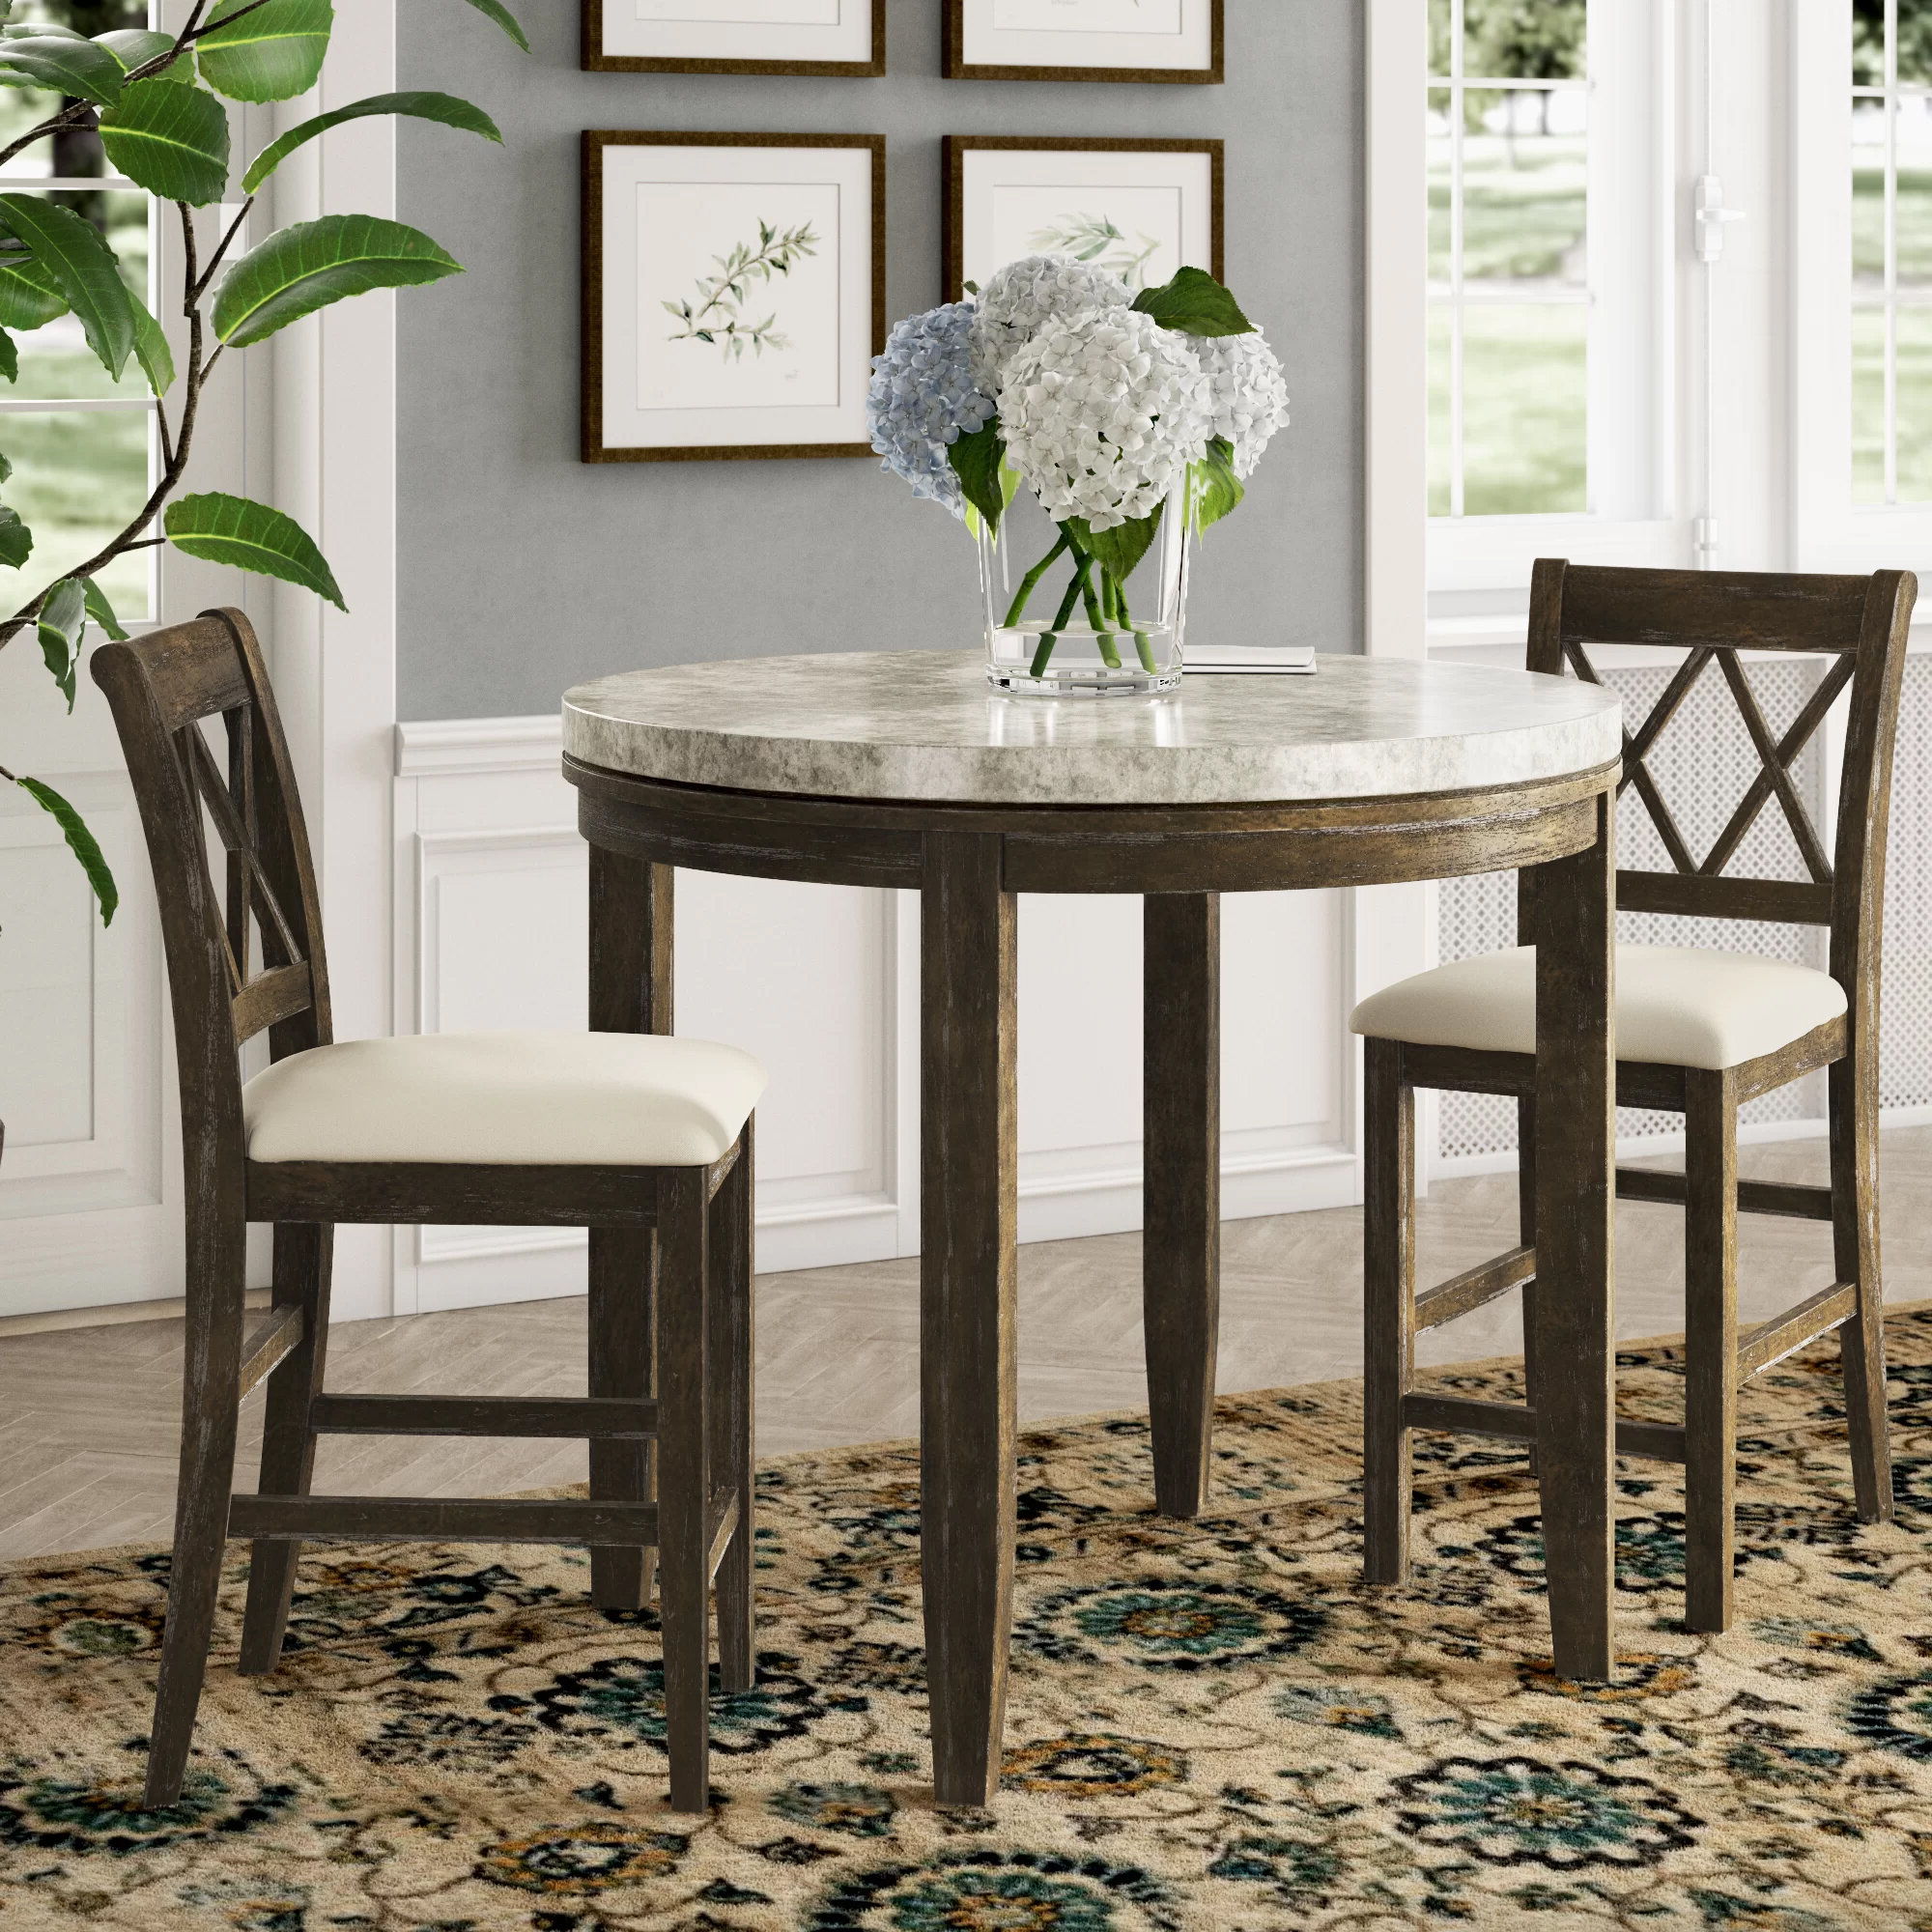 Tenney 3 Piece Counter Height Dining Sets Throughout Current Clearmont 3 Piece Dining Set (Gallery 19 of 20)